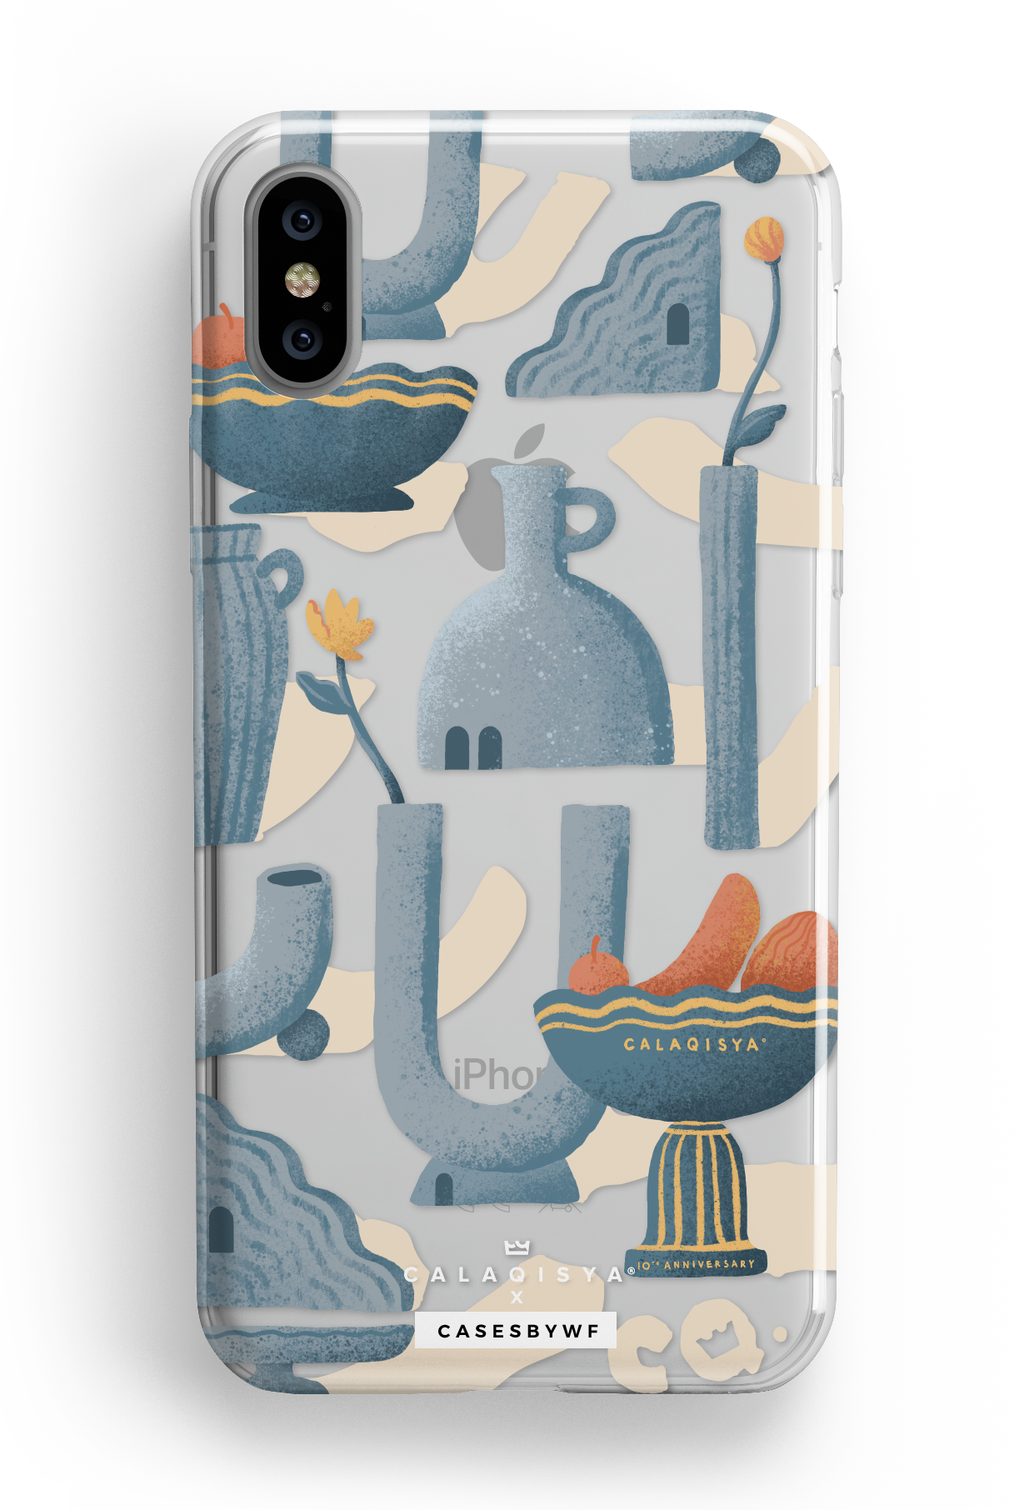 Origin - KLEARLUX™ Limited Edition CalaQisya x Casesbywf Phone Case